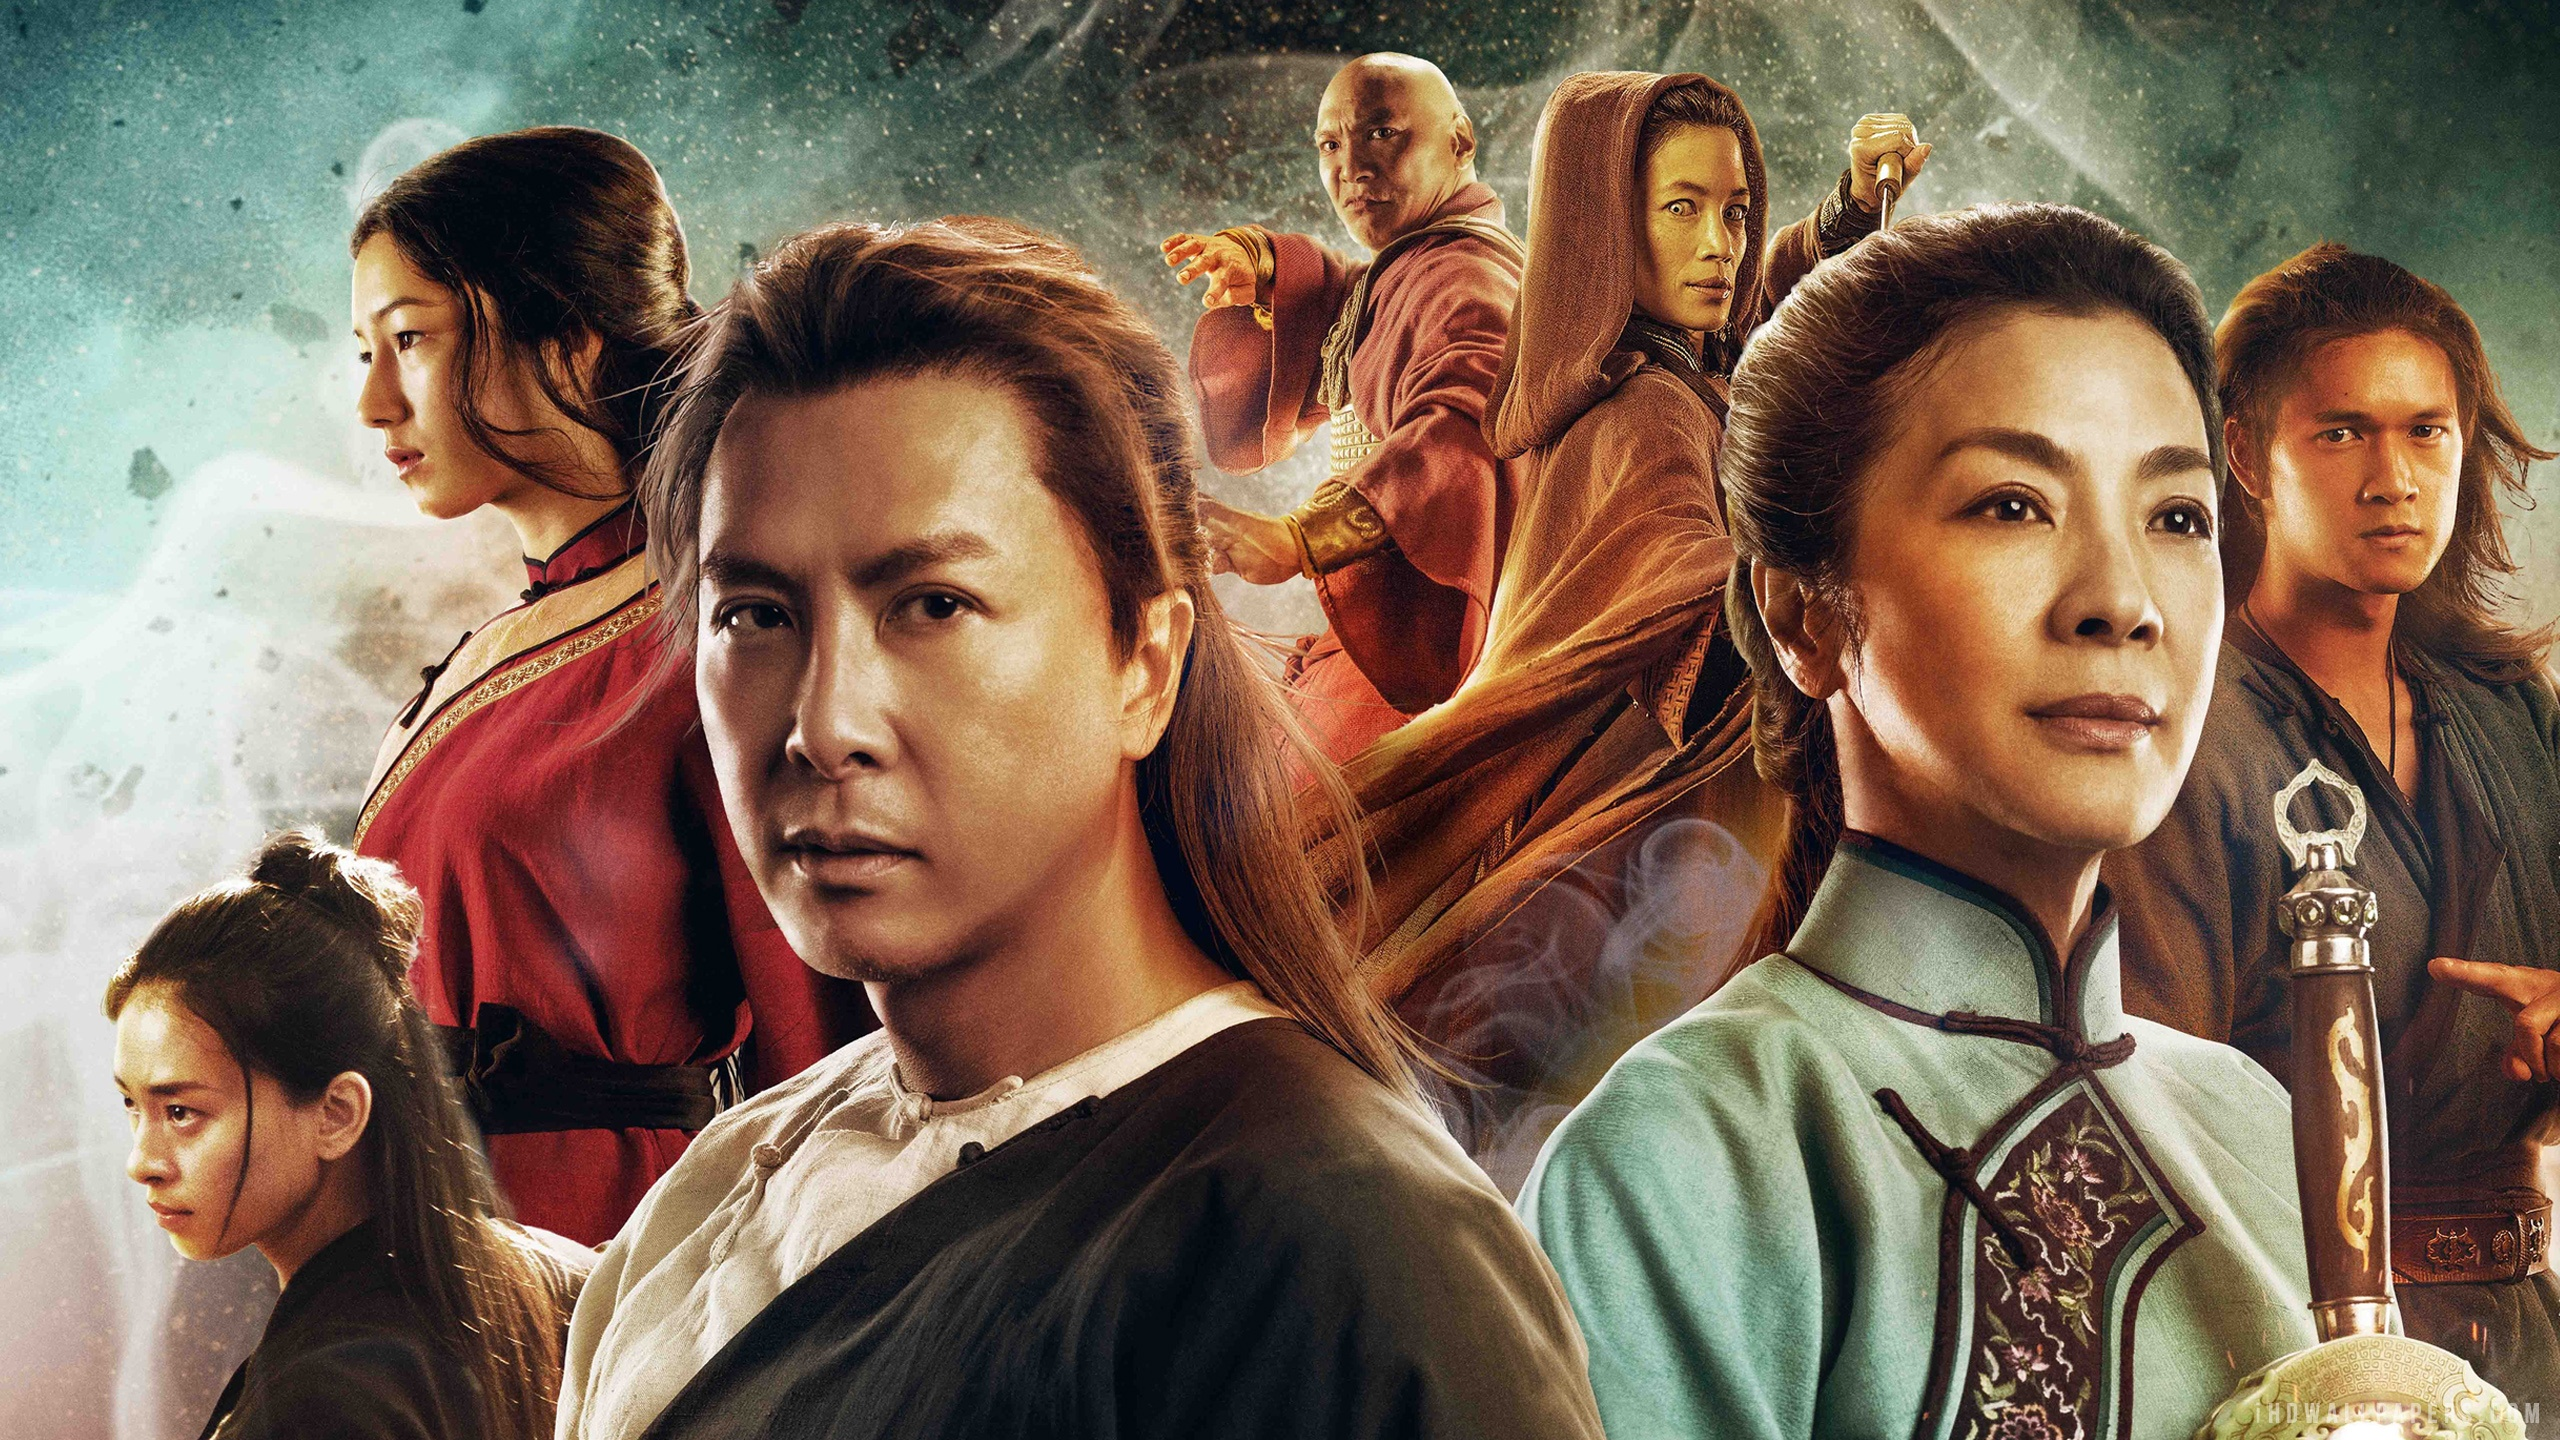 Crouching Tiger Hidden Dragon Sword of Destiny HD Wallpaper - iHD